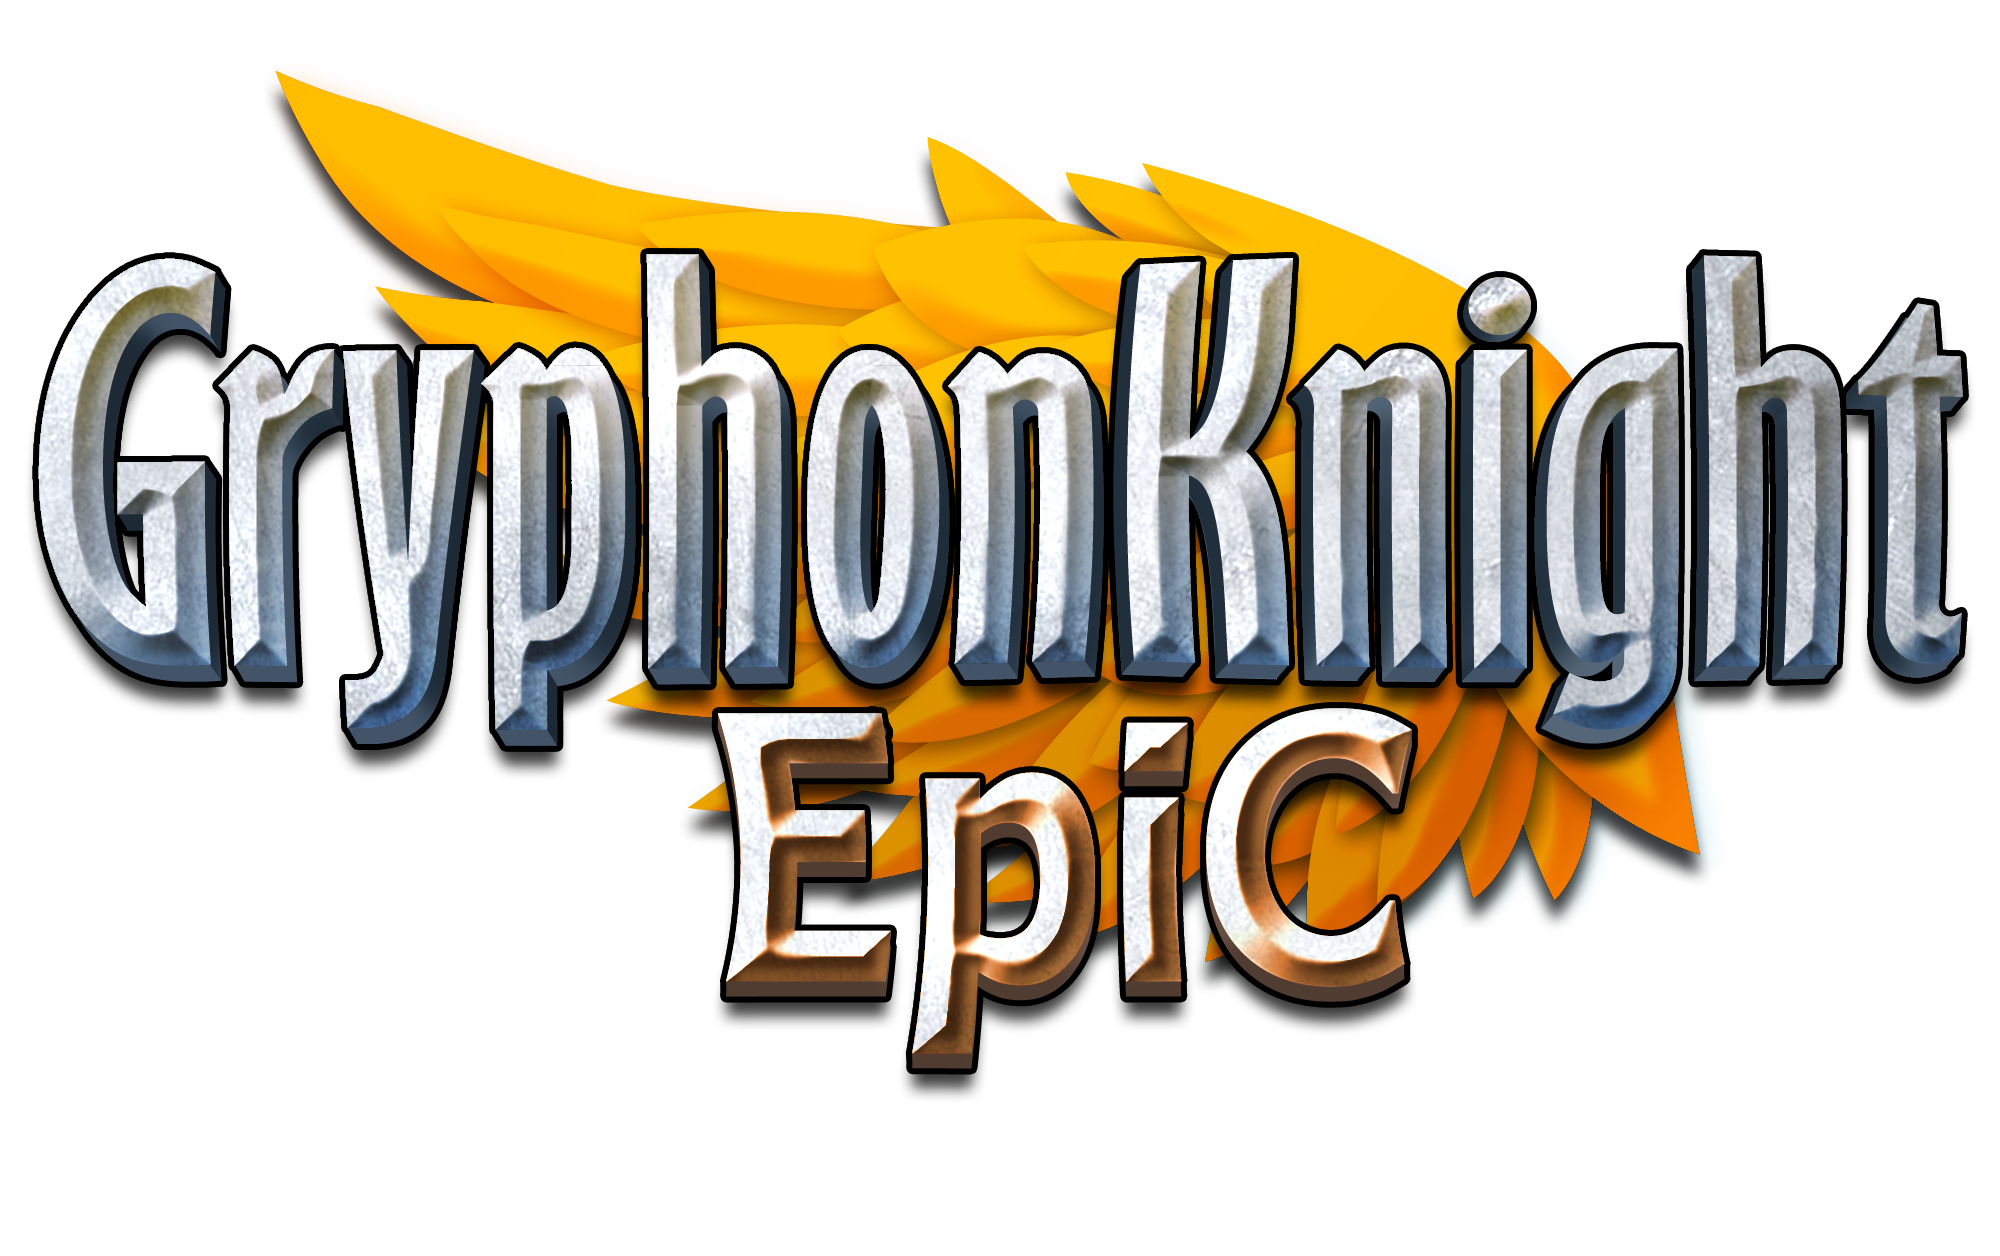 Gryphon Knight Epic [Online Game Code]